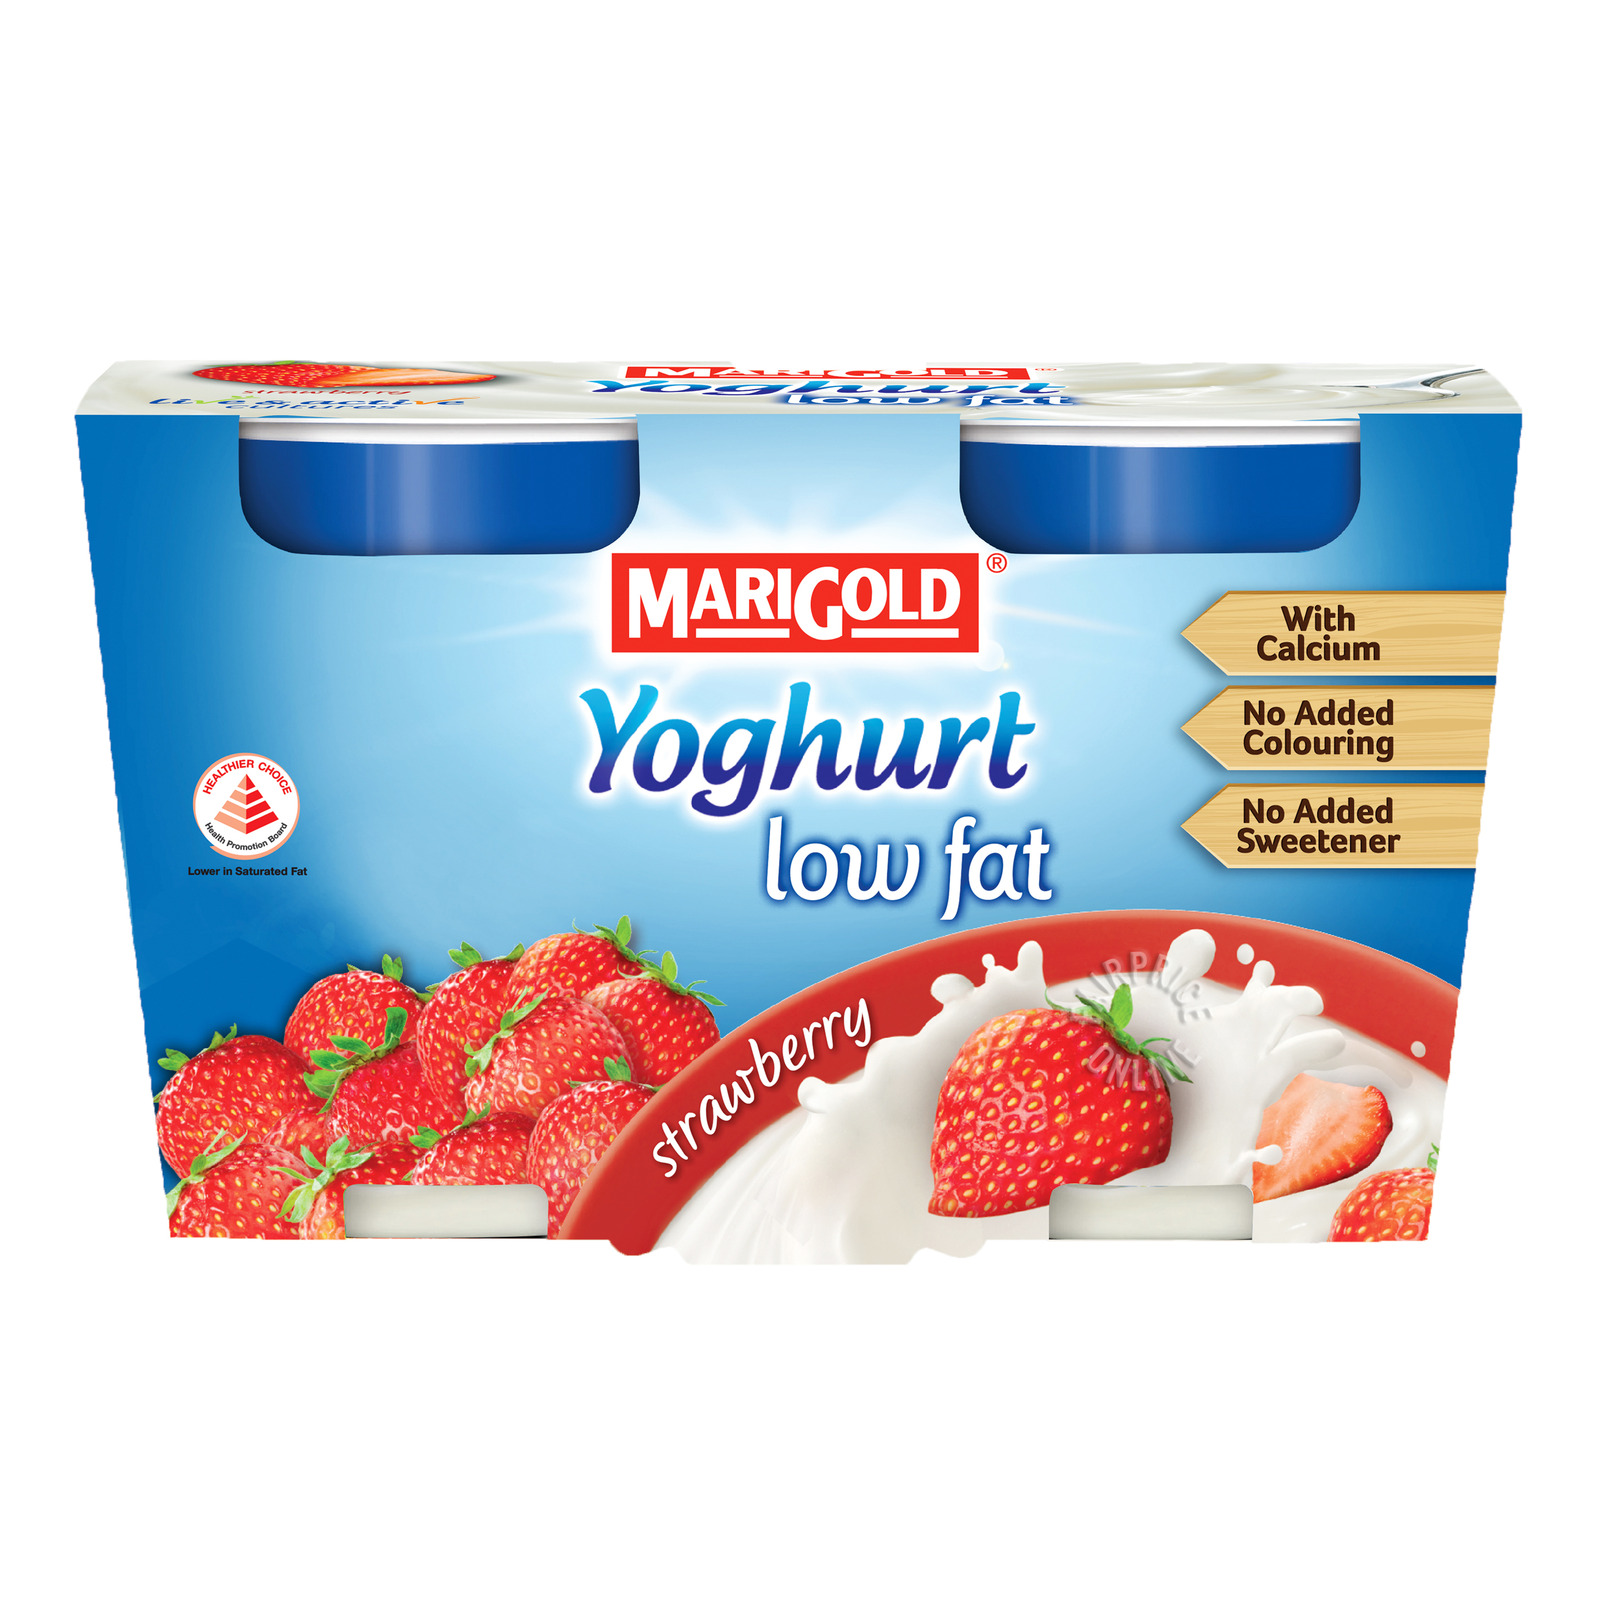 MARIGOLD Yoghurt Low Fat Strawberry 2sX130g